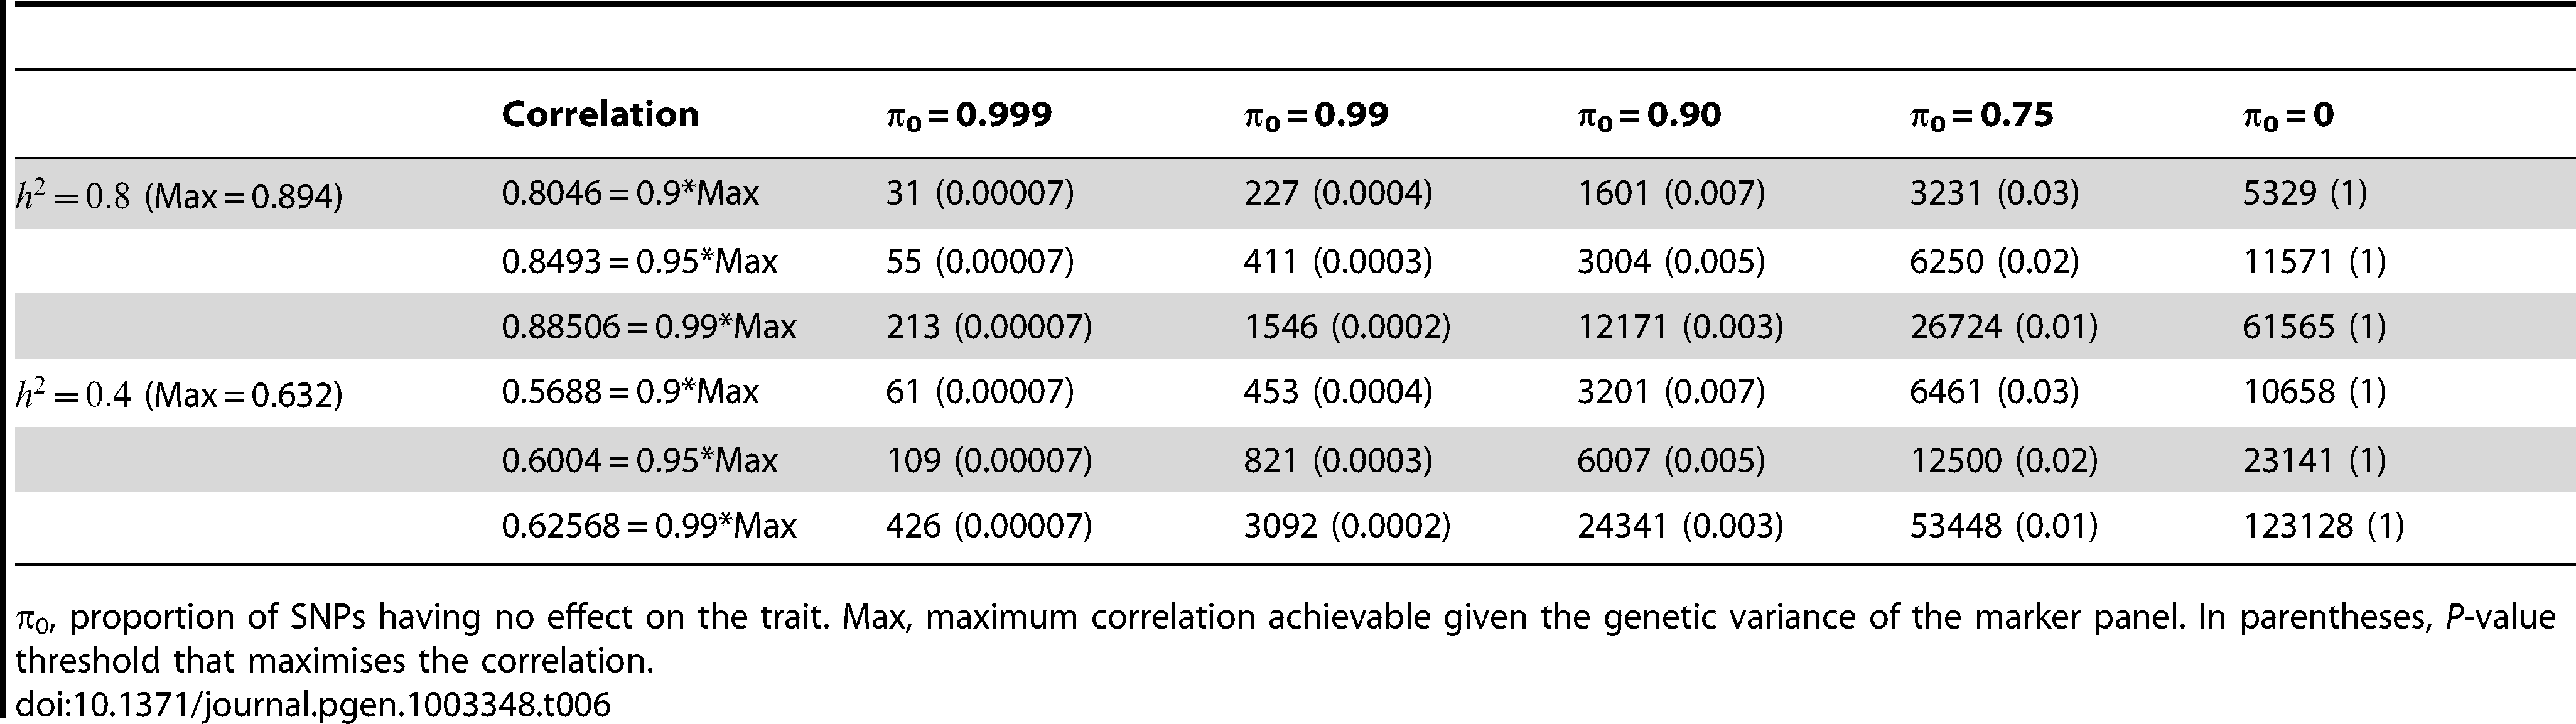 Numbers of subjects (in 1000s, rounded up) required to attain a specified correlation with a normal trait using a panel of 1,000,000 markers that explains the full heritability.